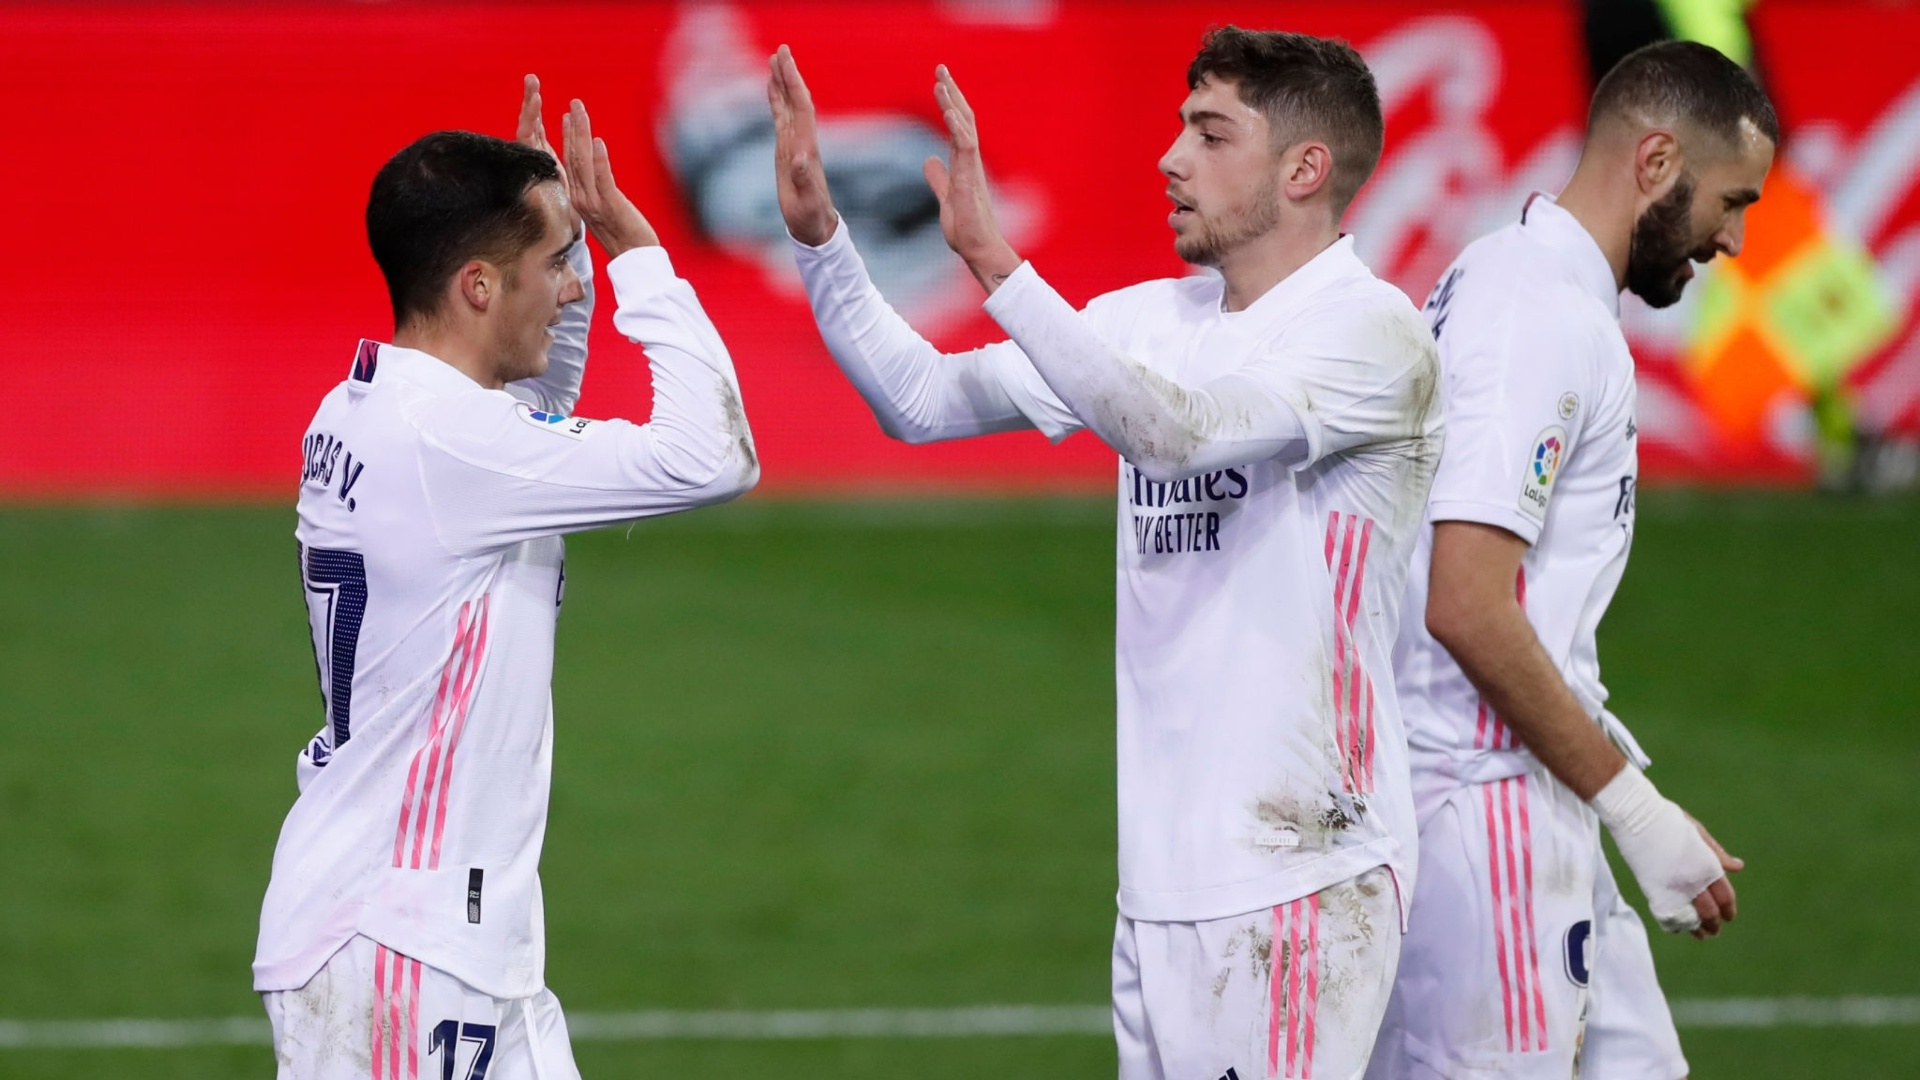 Match Preview: CD Alcoyano vs Real Madrid